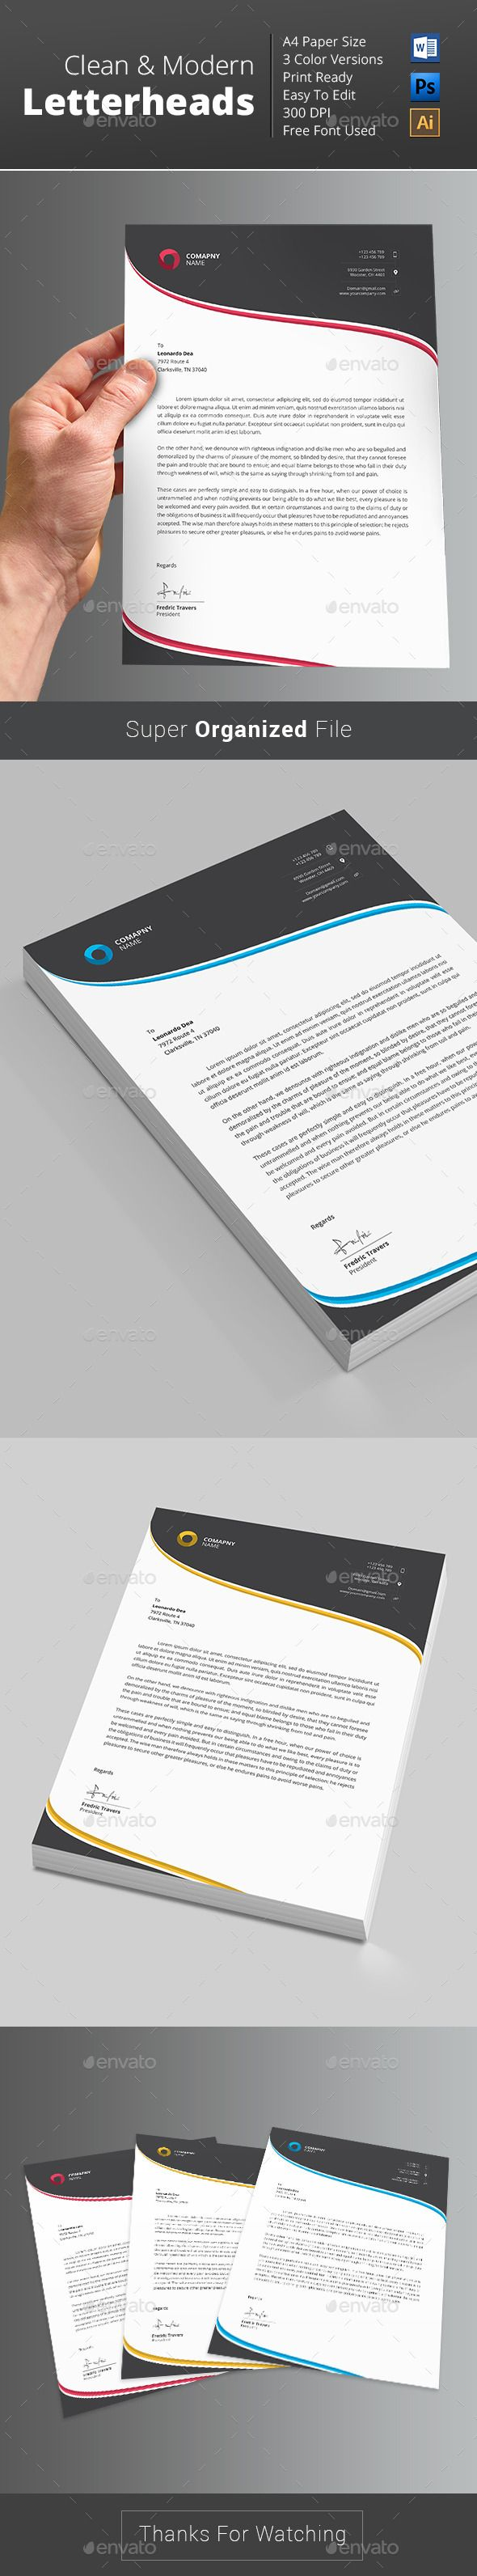 Letterhead Template PSD, Vector AI. Download here: http://graphicriver.net/item/letterhead/12987178?s_rank=1052&ref=yinkira